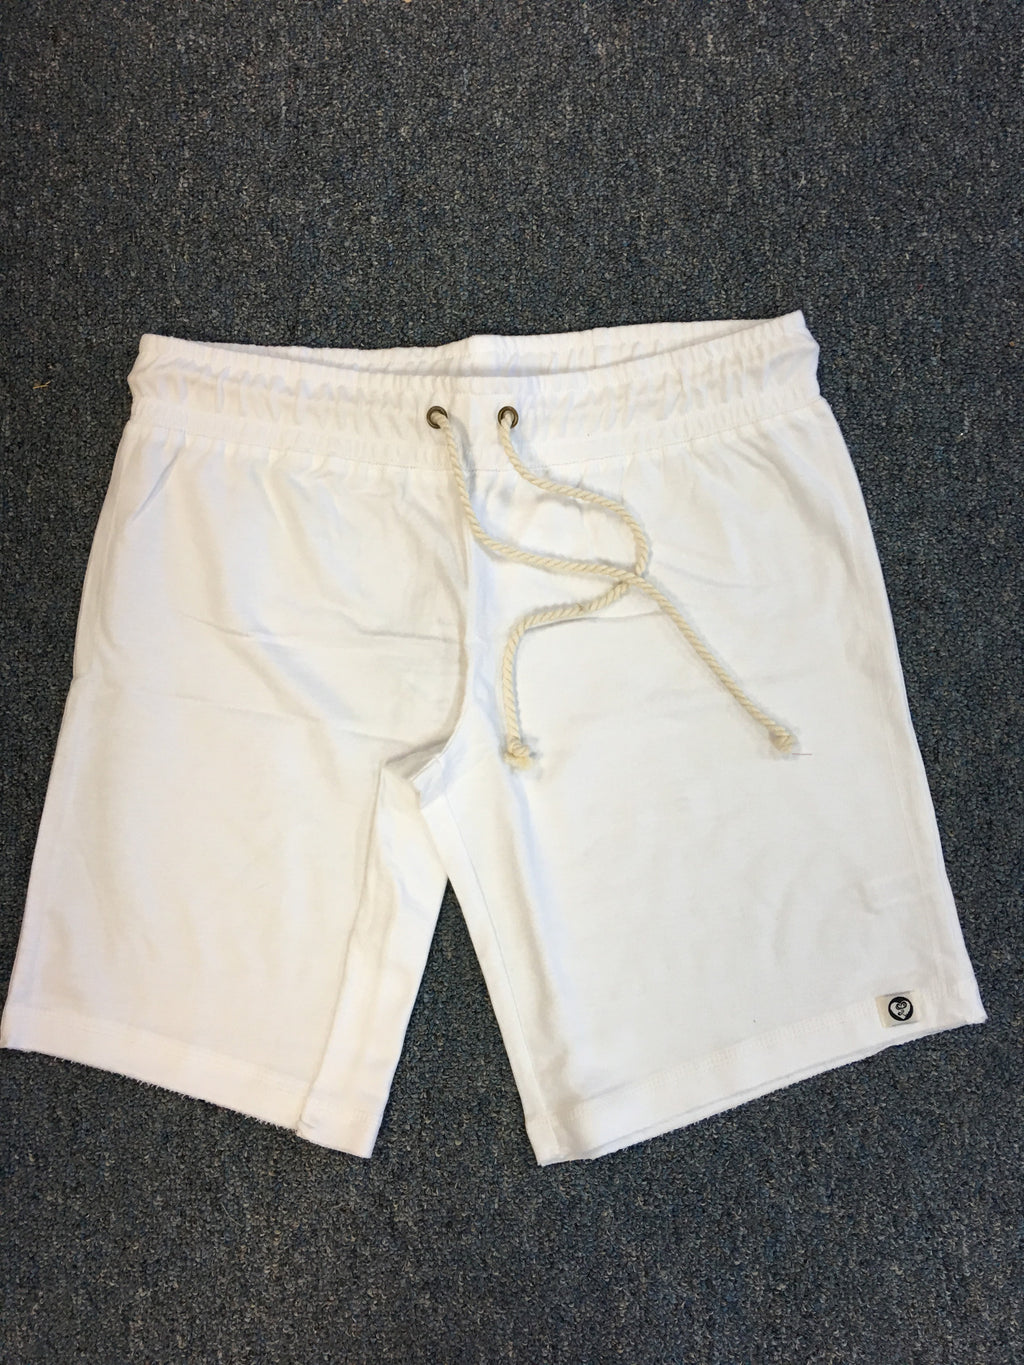 LI French Terry Bermuda Shorts